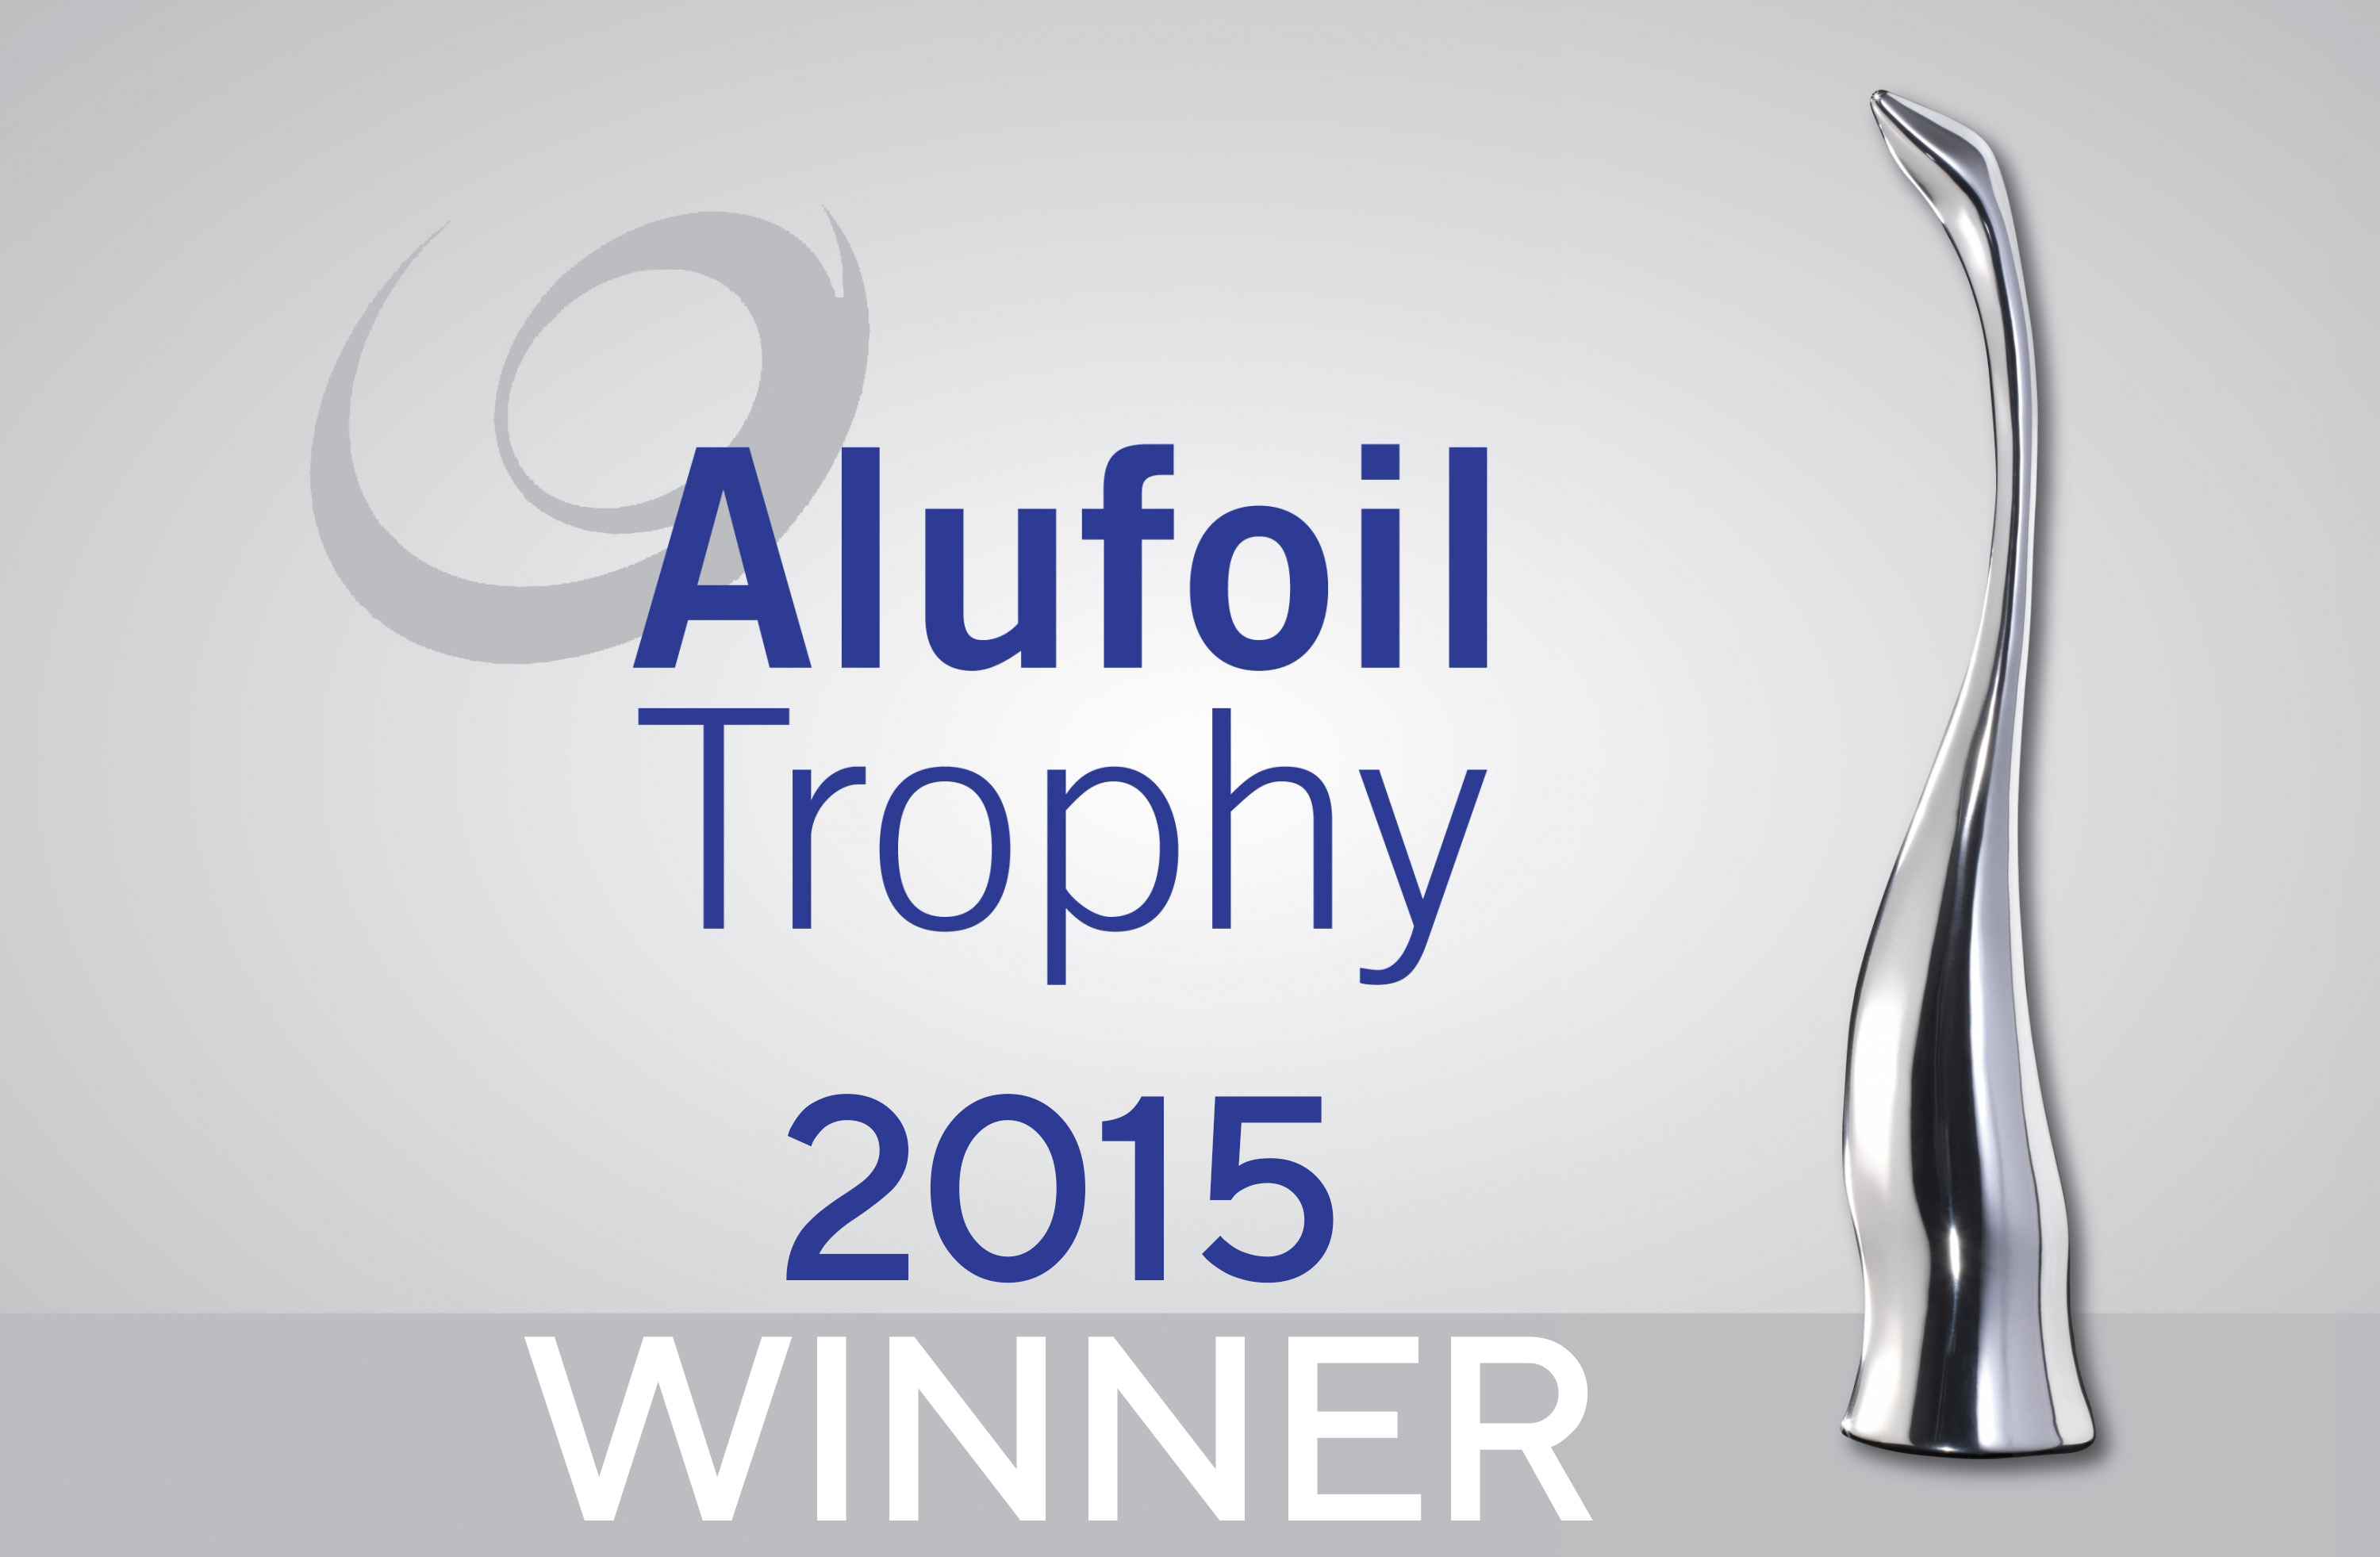 Alufoil Trophy 2015 Icont